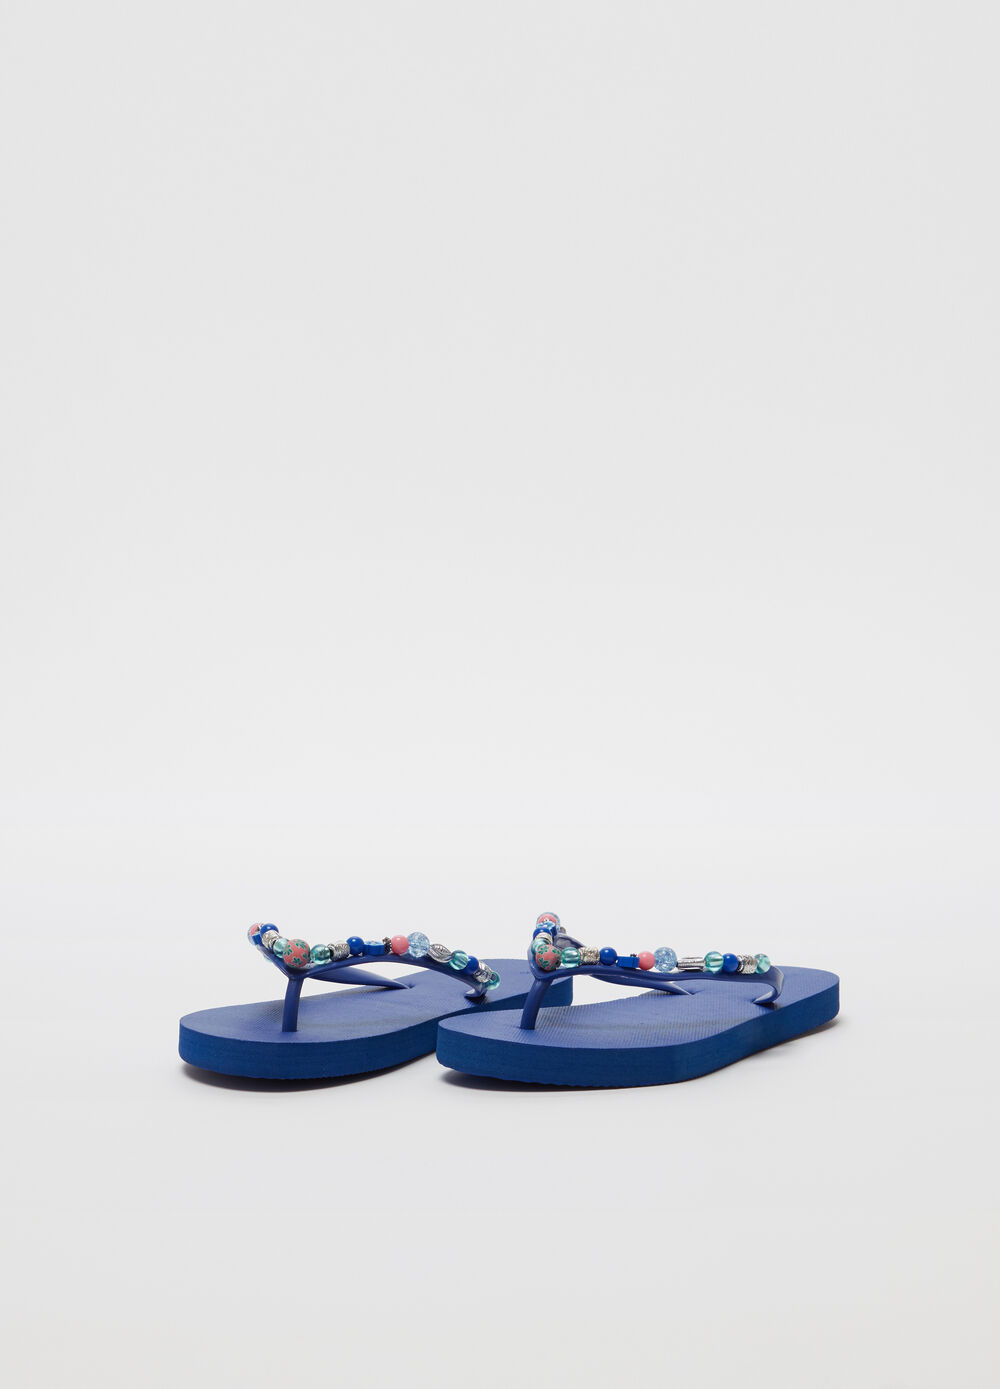 Thong sandals with beads and flat heel